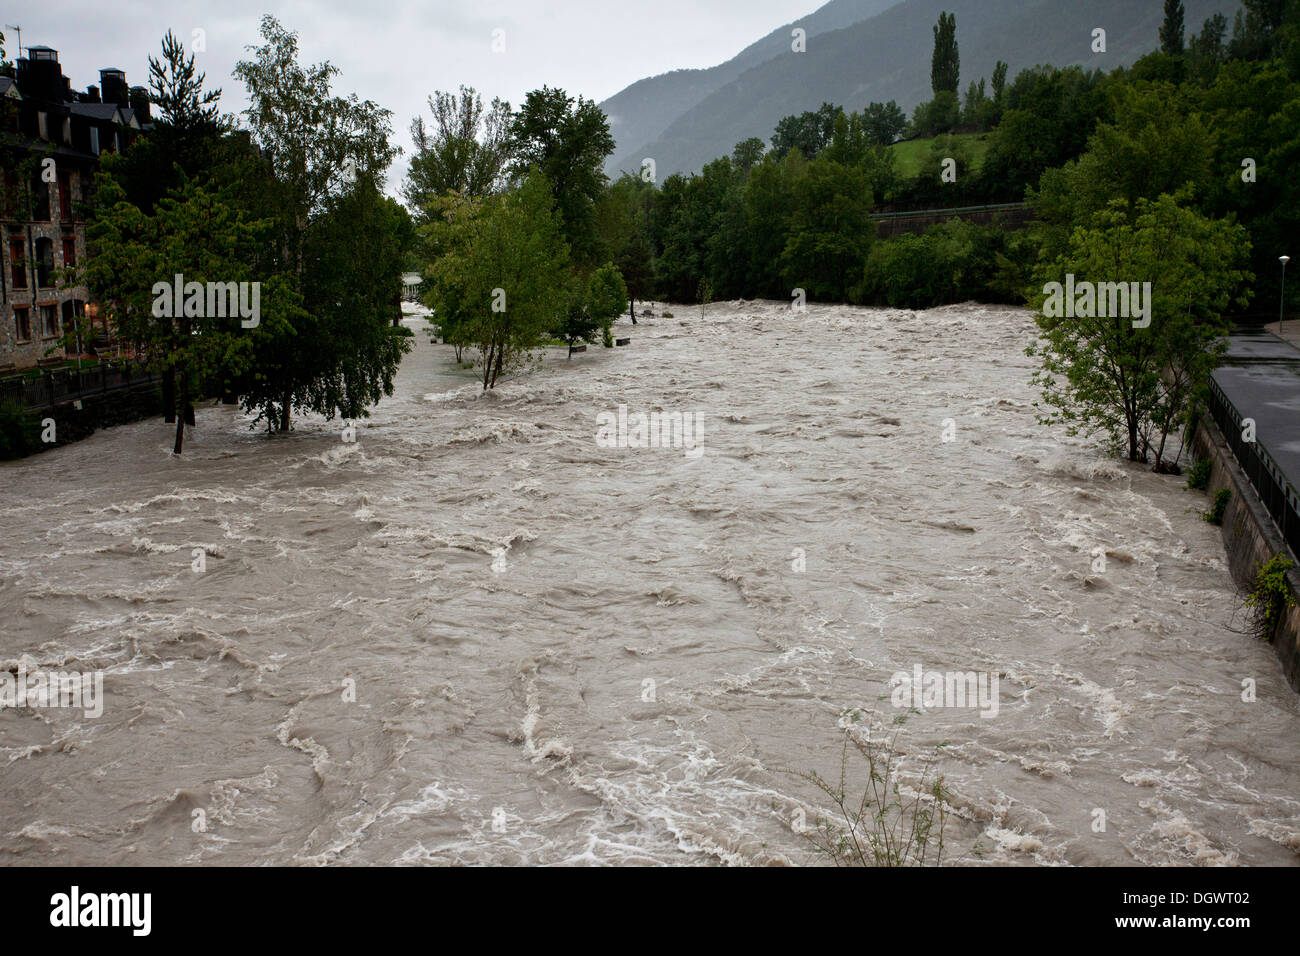 The Rio Ara in flood after rains of June 2013, Ordesa, Pyrenees, Spain. - Stock Image